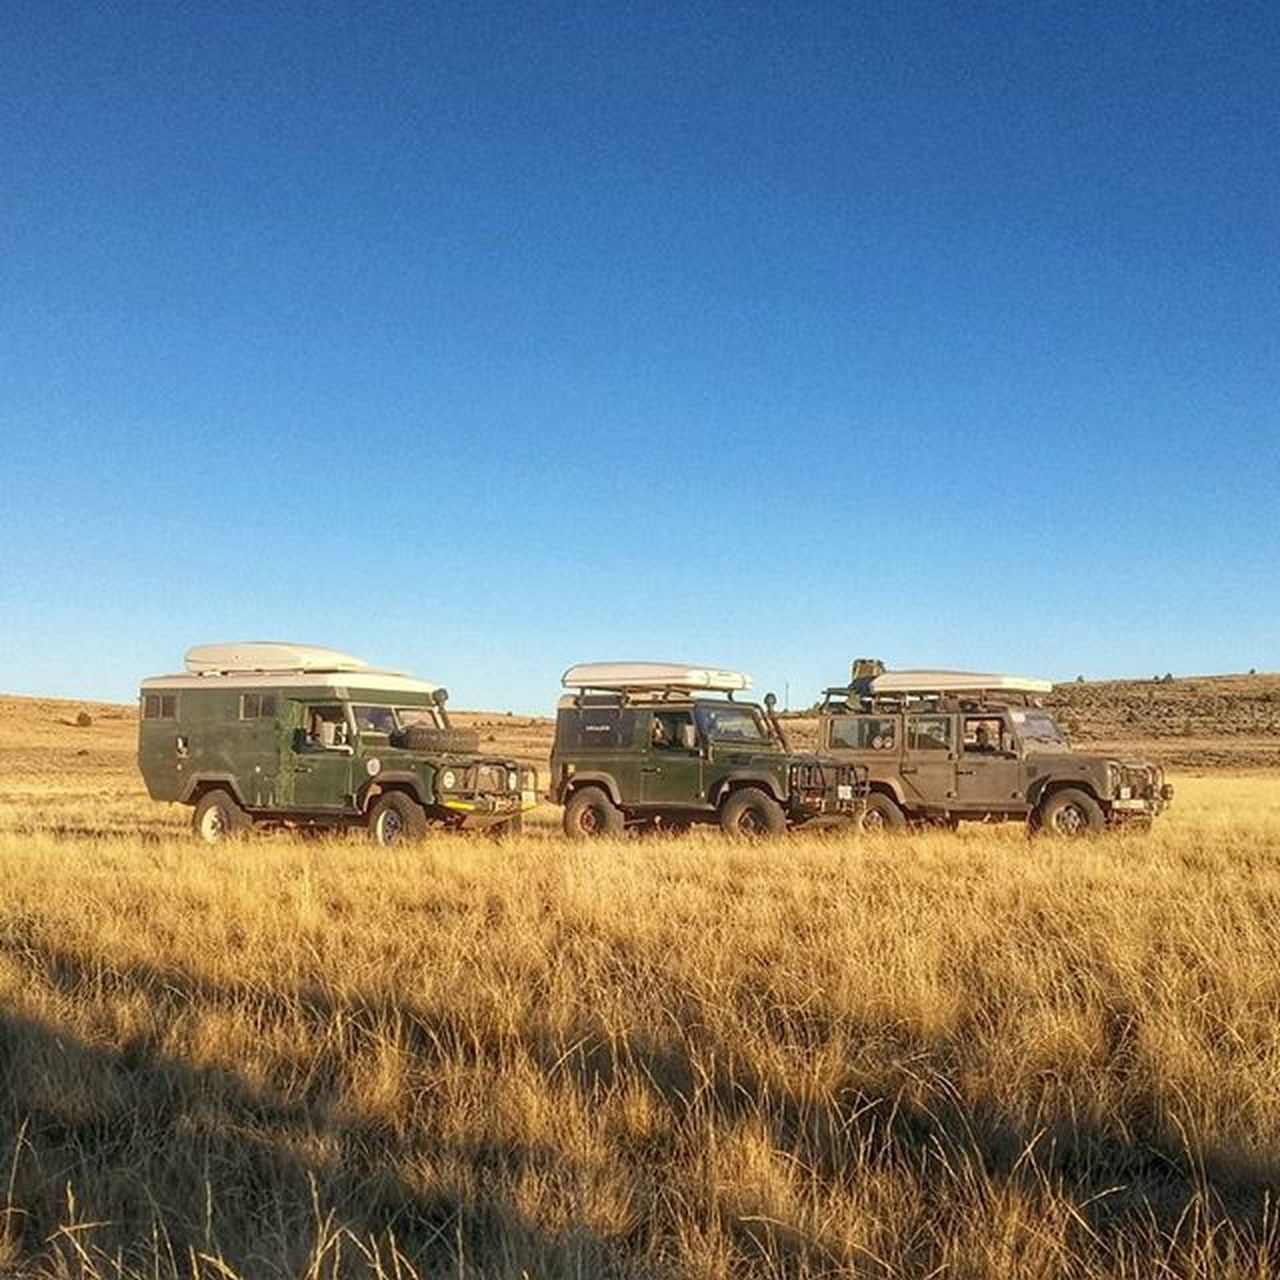 ...Defenders in their natural environment. Landrover  Defender110 Defender90 Landroverdefender Landrover130 D90 D110 Defenderrvp Adventuremobile Overlanding Wndrlst Exploregon Steens Alvord Overlanding